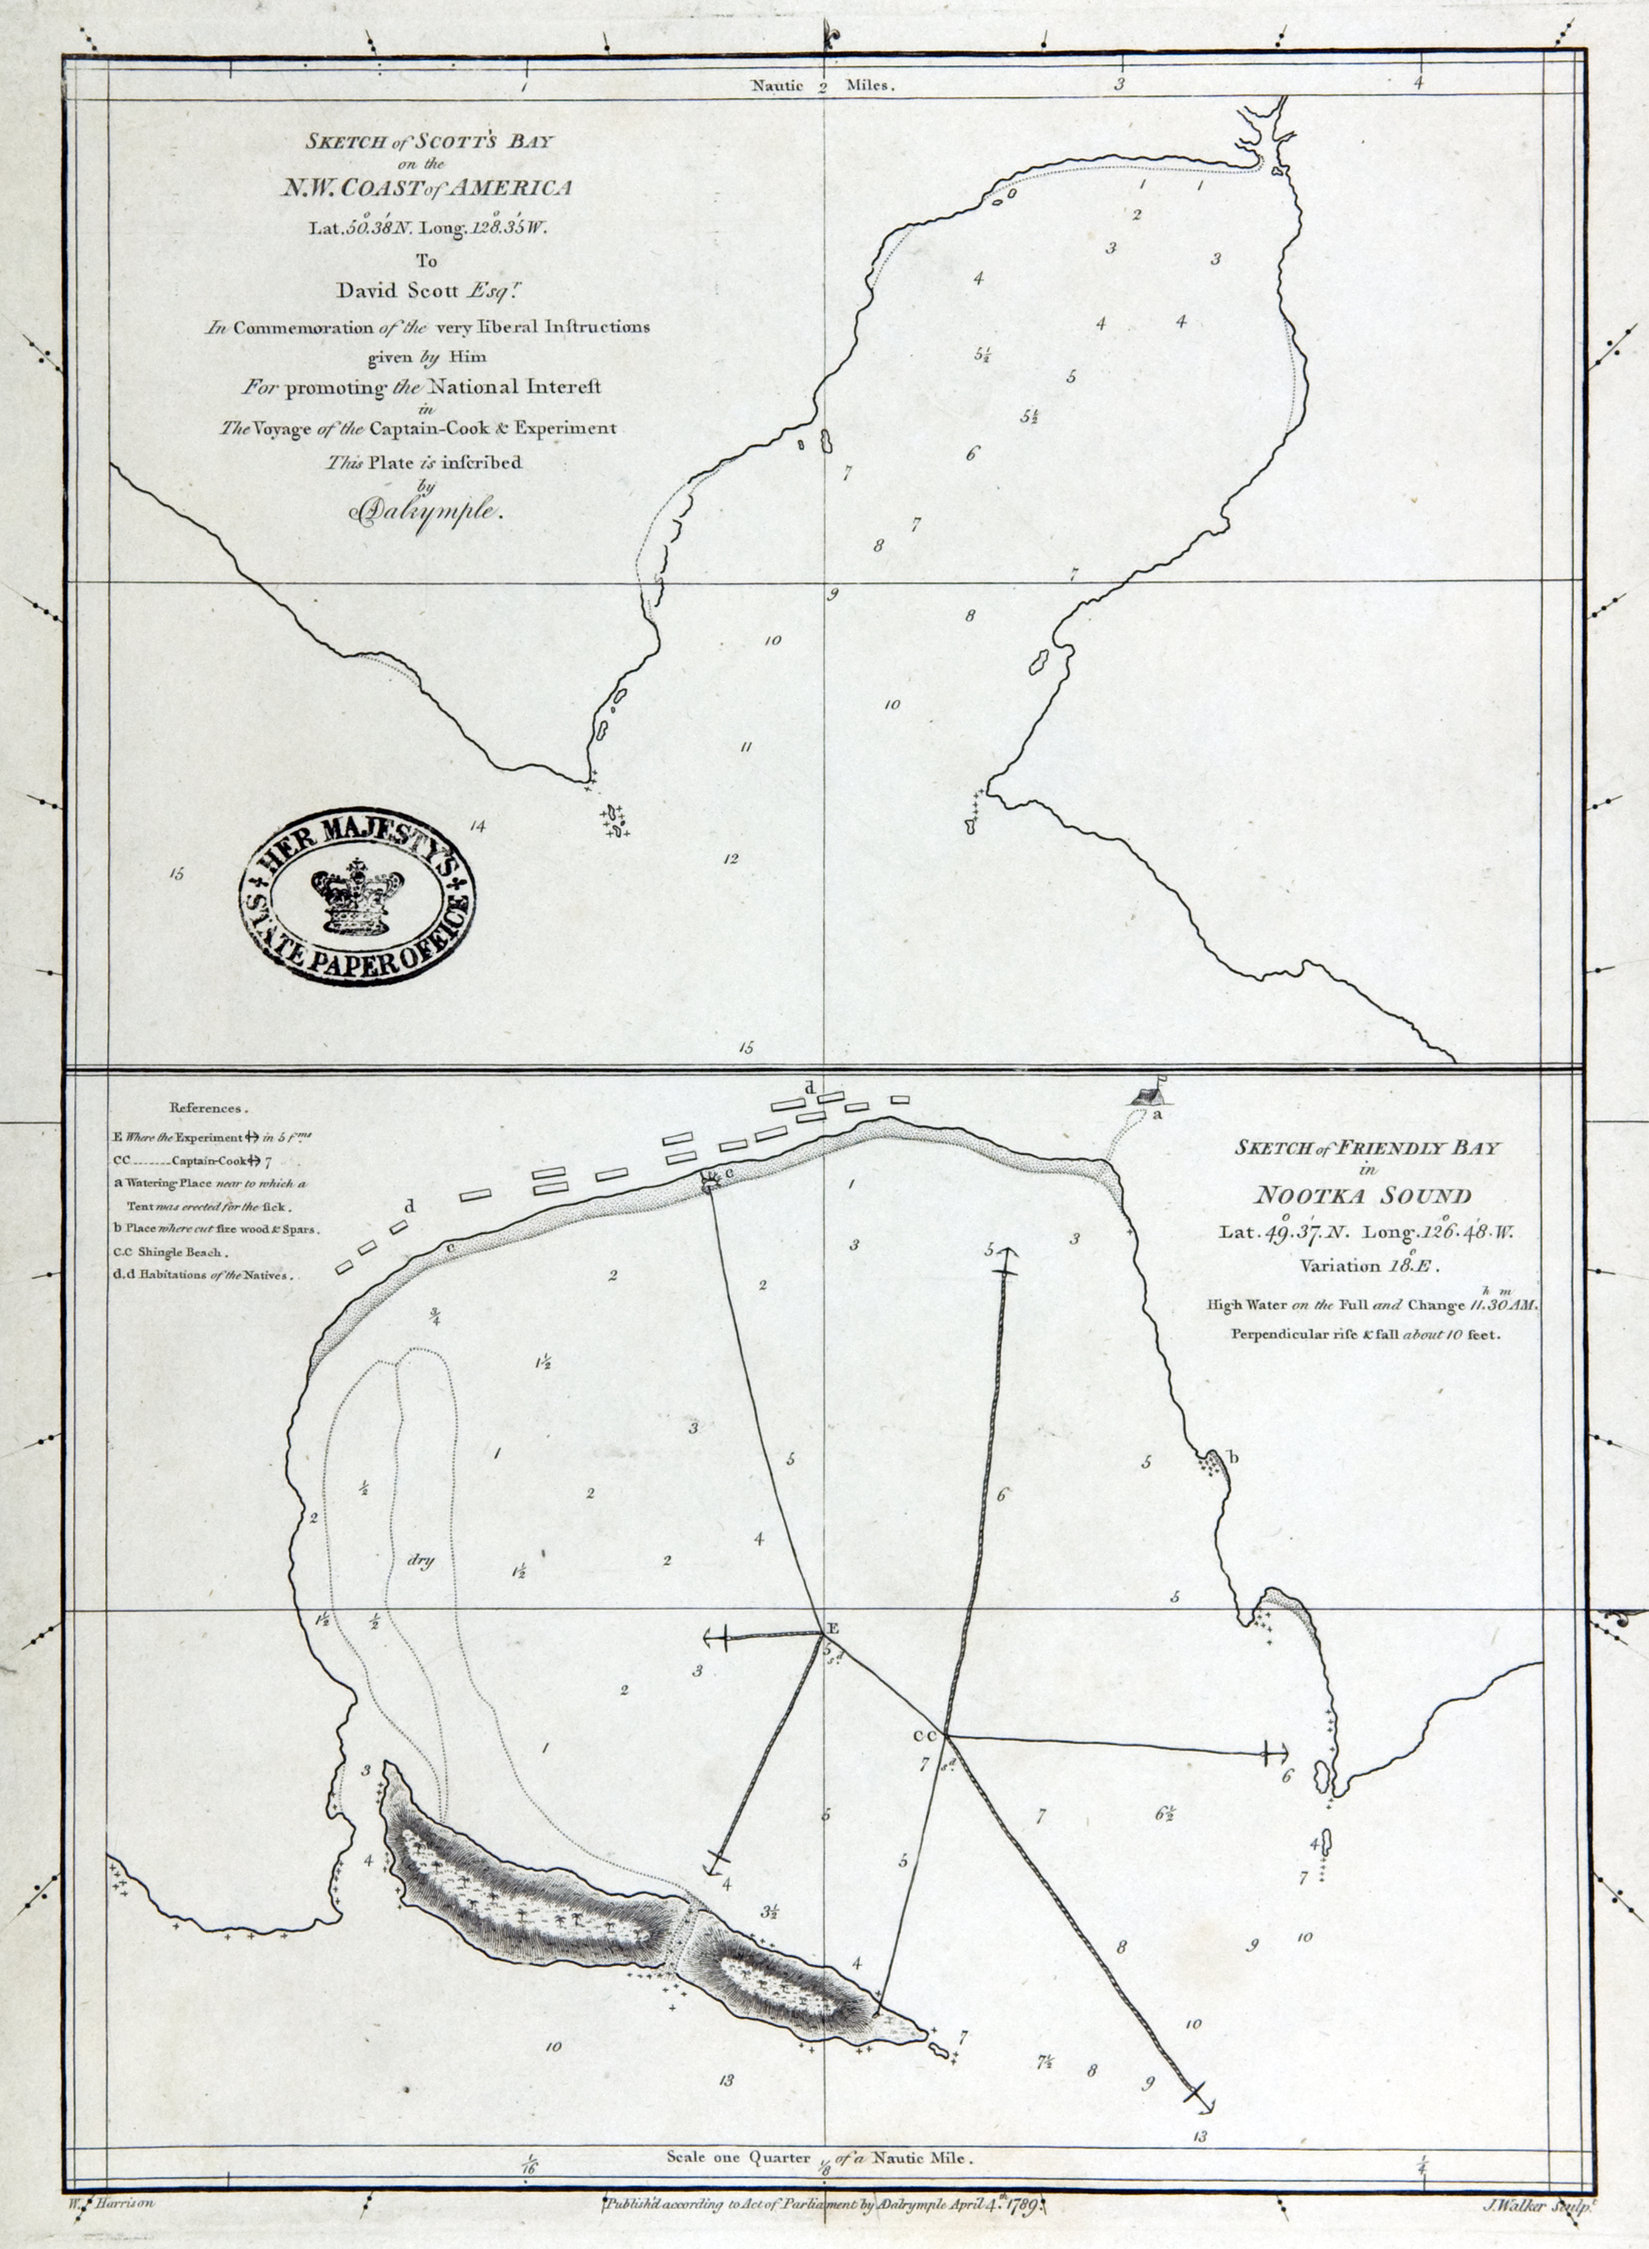 Sketch of Scott's Bay on the N.W. Coast of America. Lat. 50 38N. Long. 128 35W. [and] Sketch of Friendly Bay in Nootka Sound. Lat. 49 37N. Long. 126 48 W. Variation 18 E.